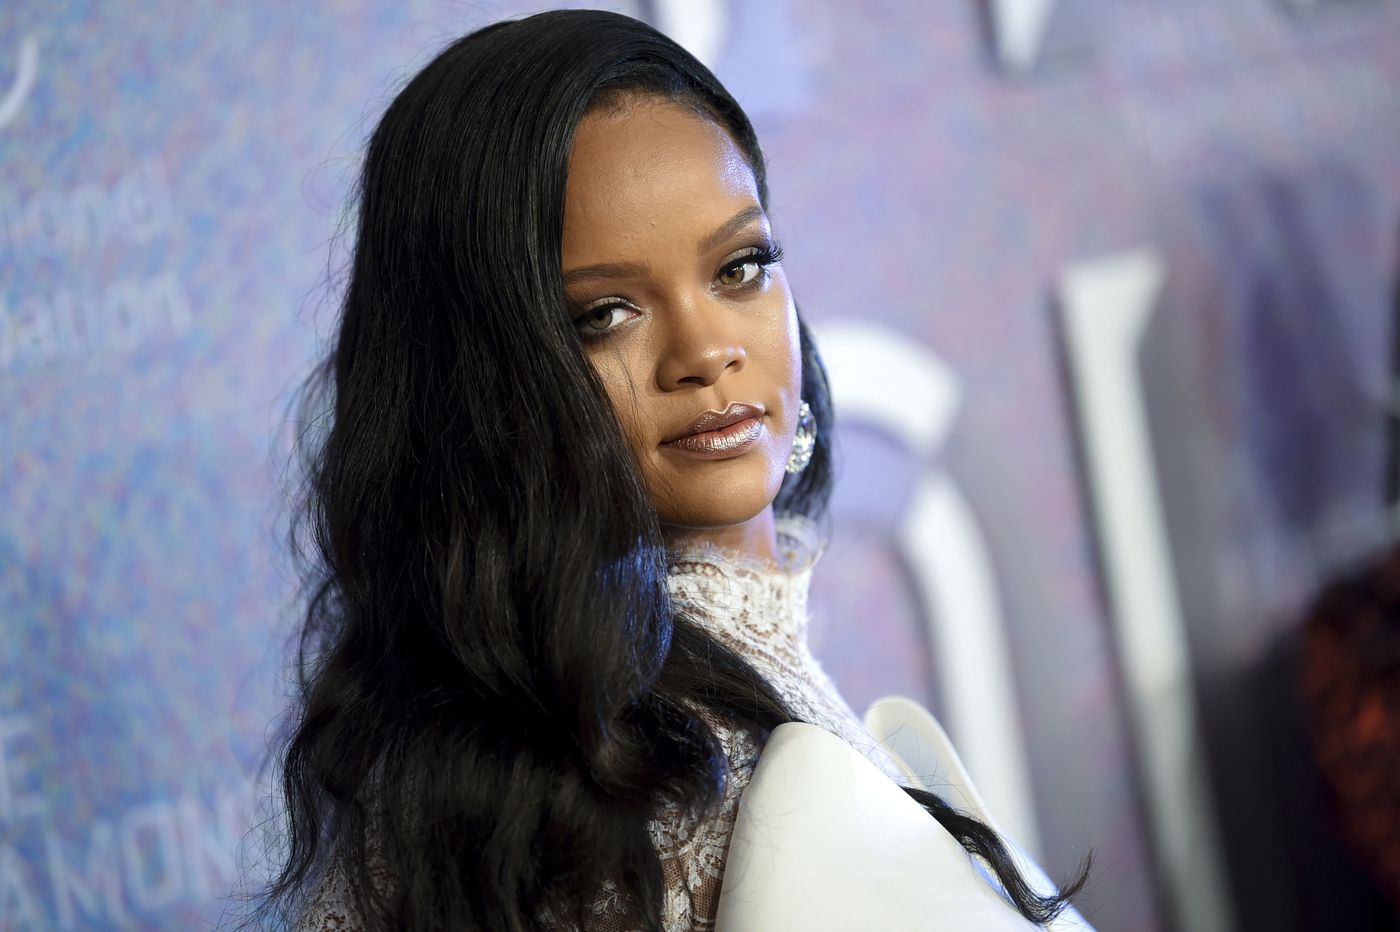 Rihanna is joining a luxury fashion house. But does Rihanna need luxe, or does luxe need Rihanna? | Elizabeth Wellington